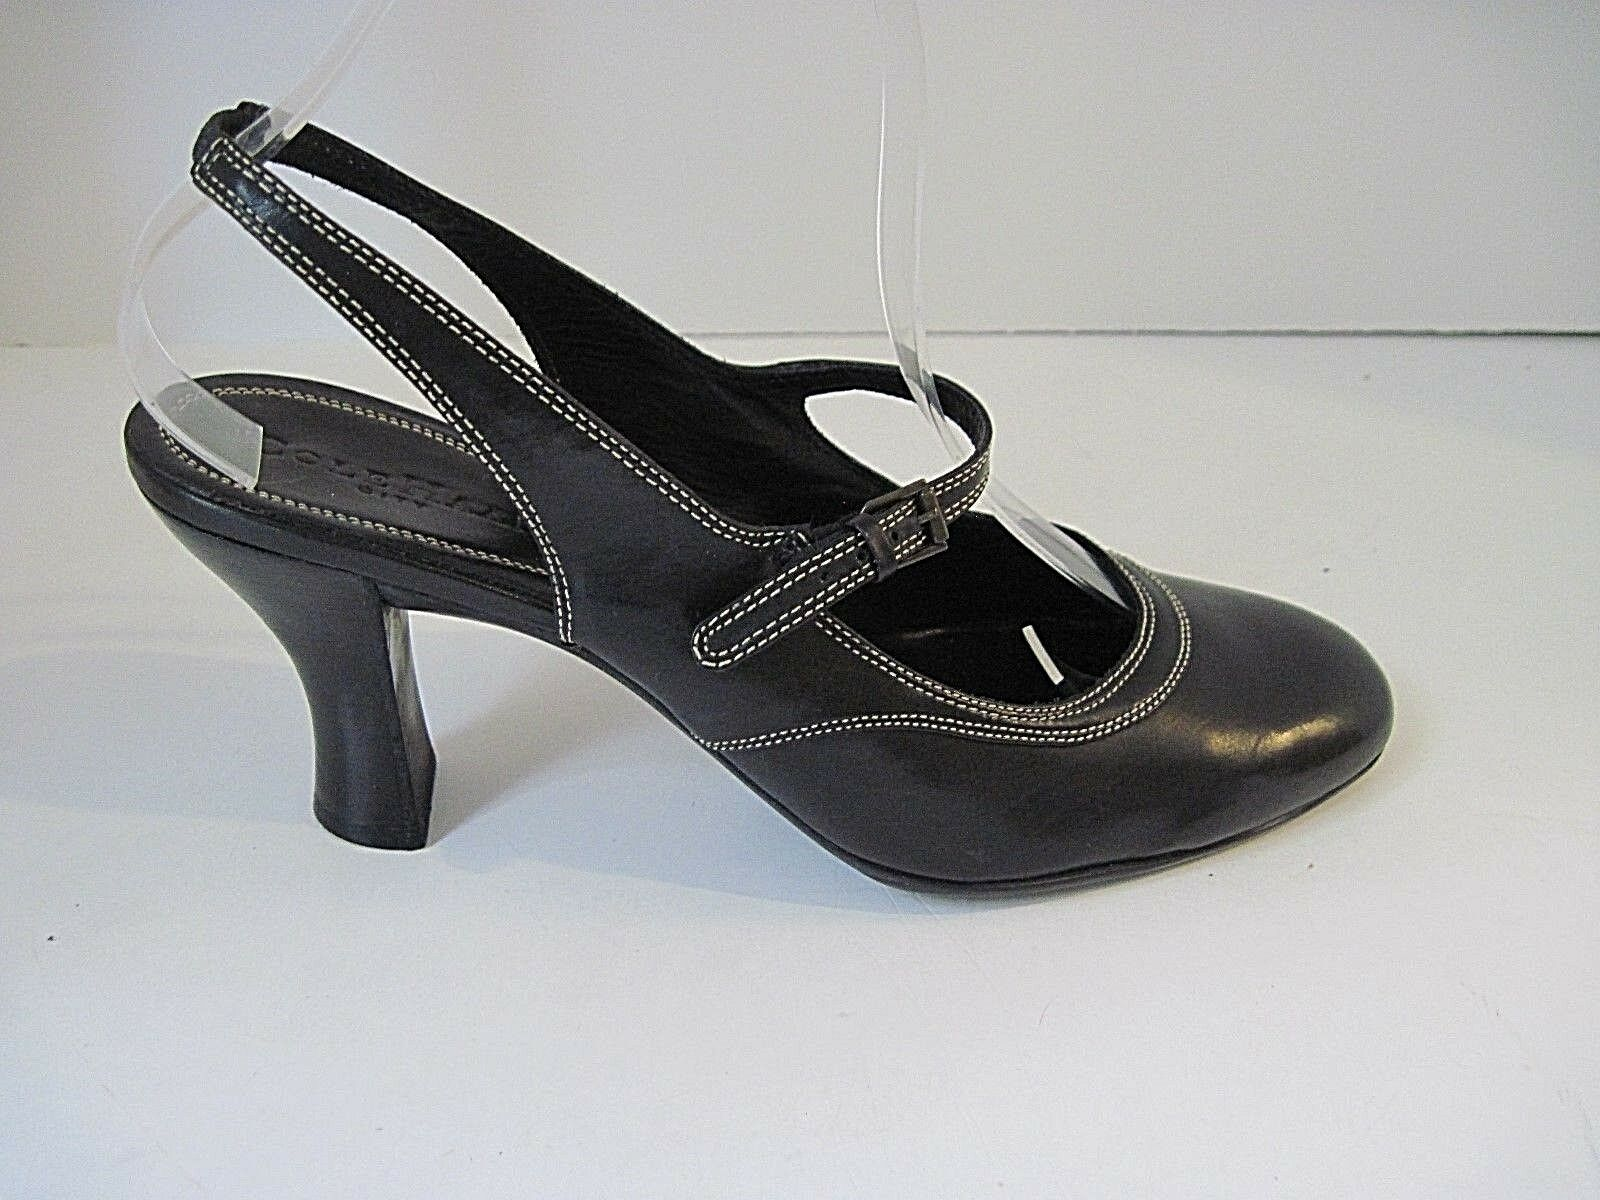 COLE HAAN BLACK LEATHER WEISS STITCHING MARY JANE HEELS PUMPS SIZE 8 1/2 B